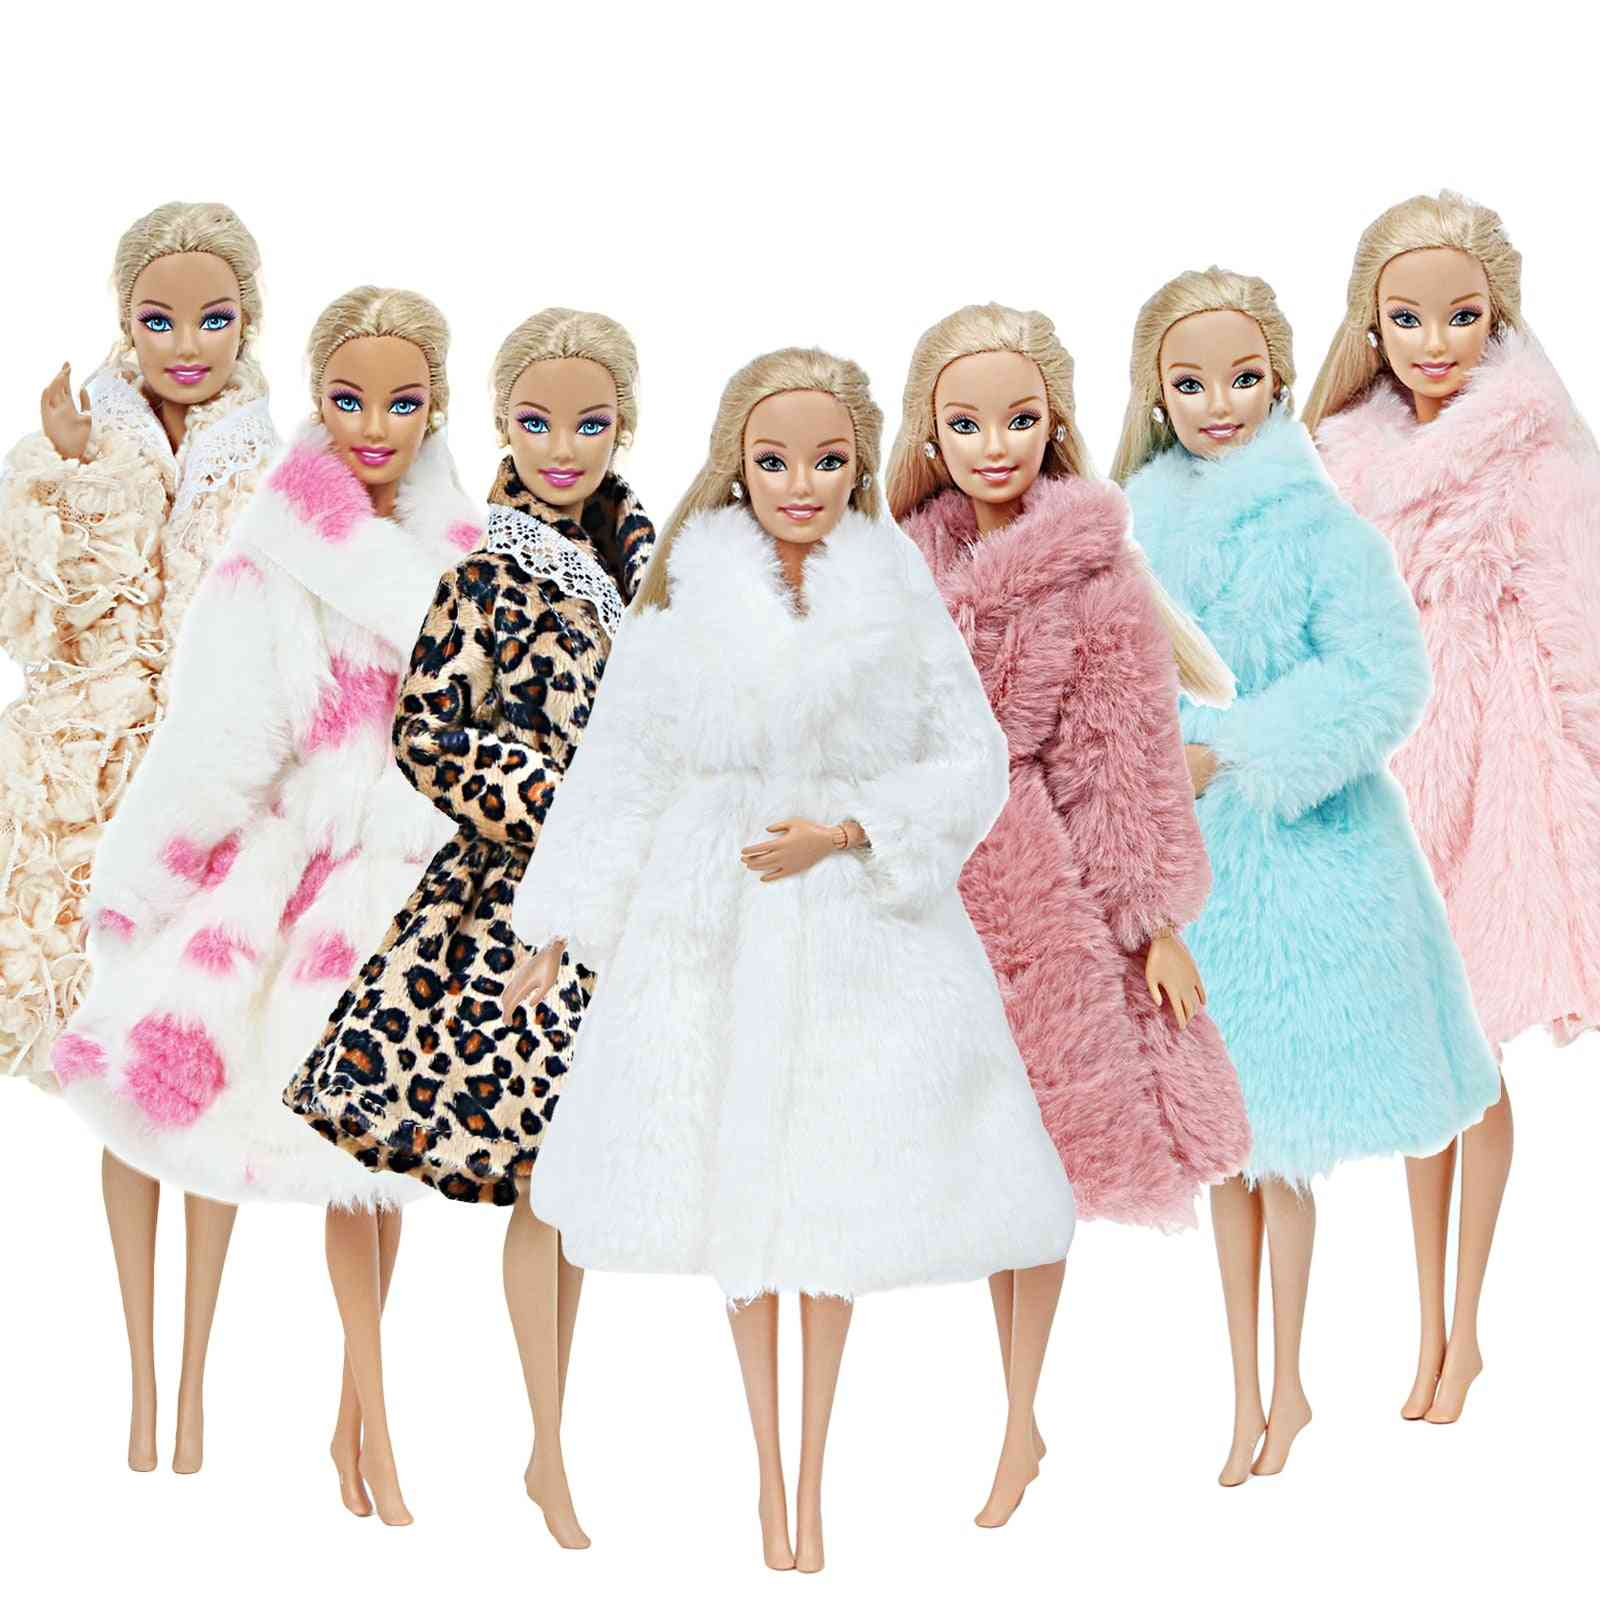 Handmade, High Quality Fur Coat Dress For Barbie Doll - Winter Wear Outfit